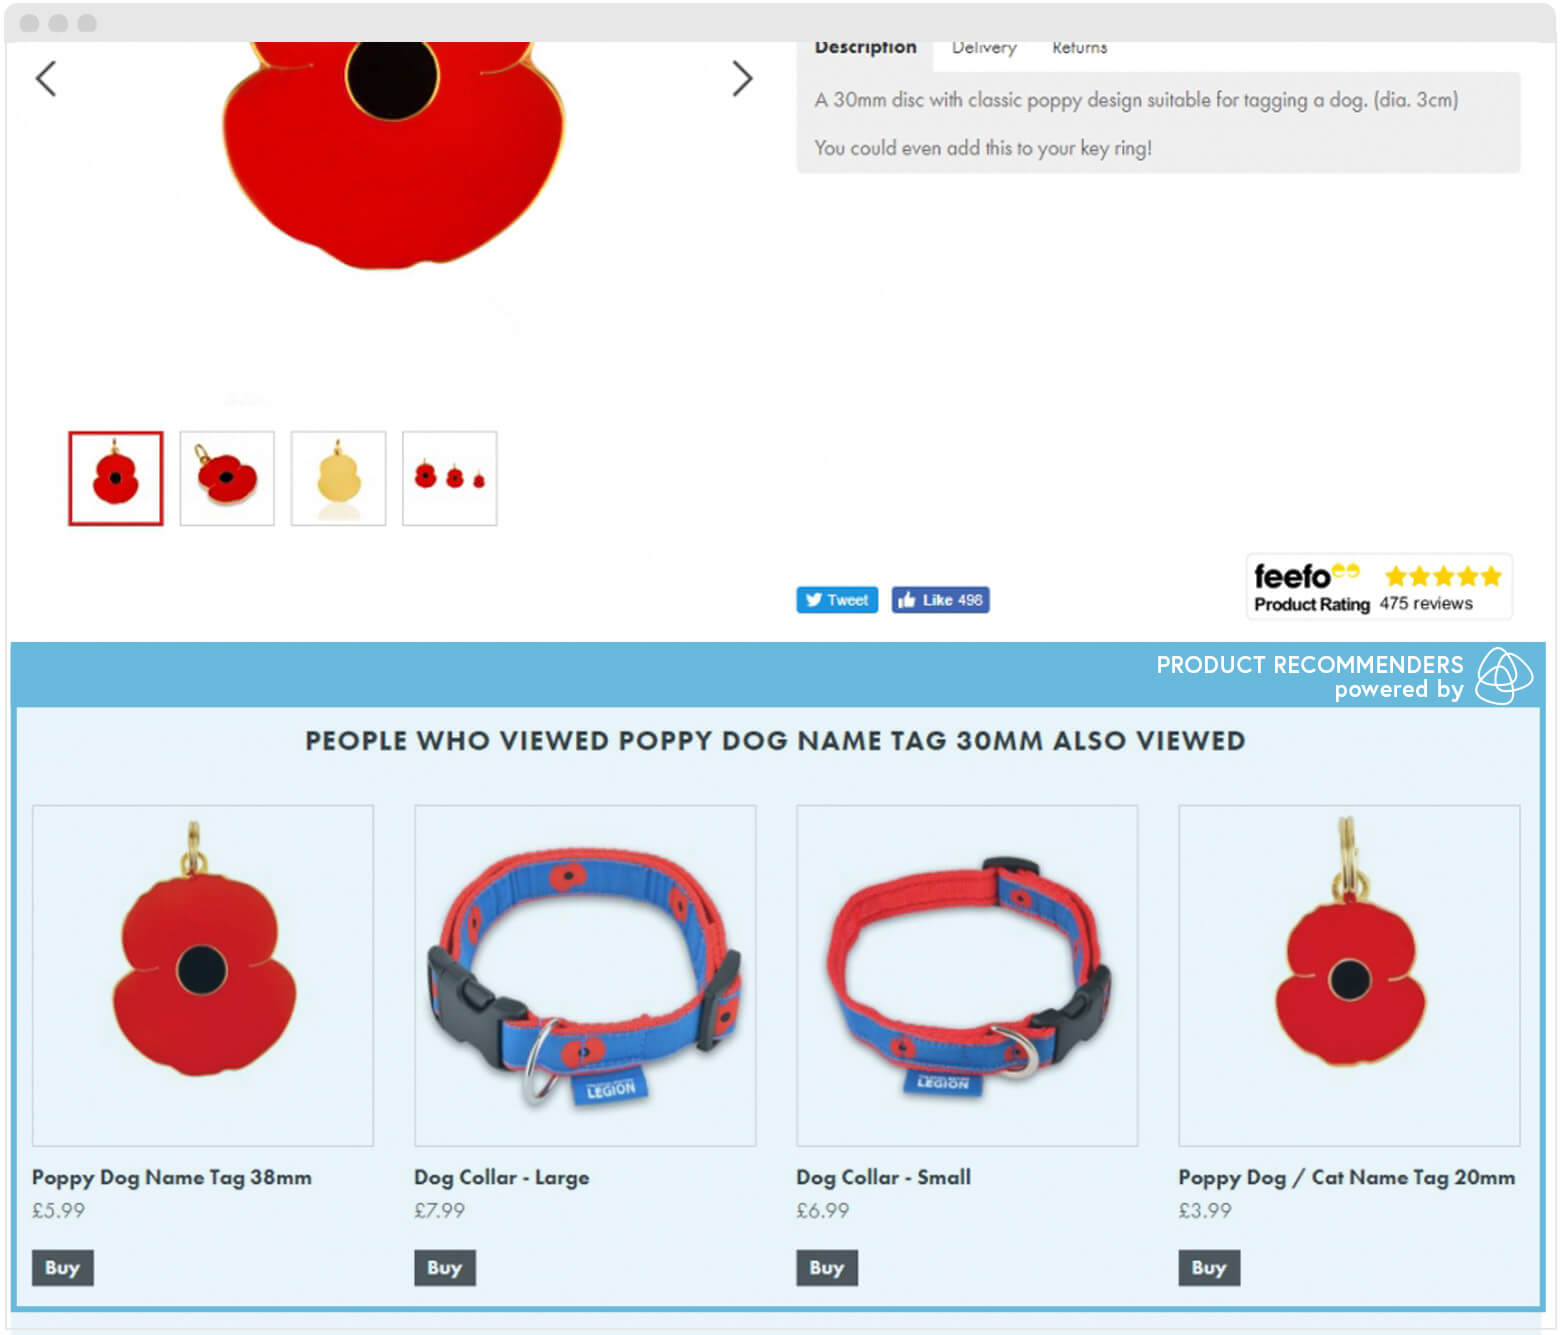 Poppy Shop Product Recommenders